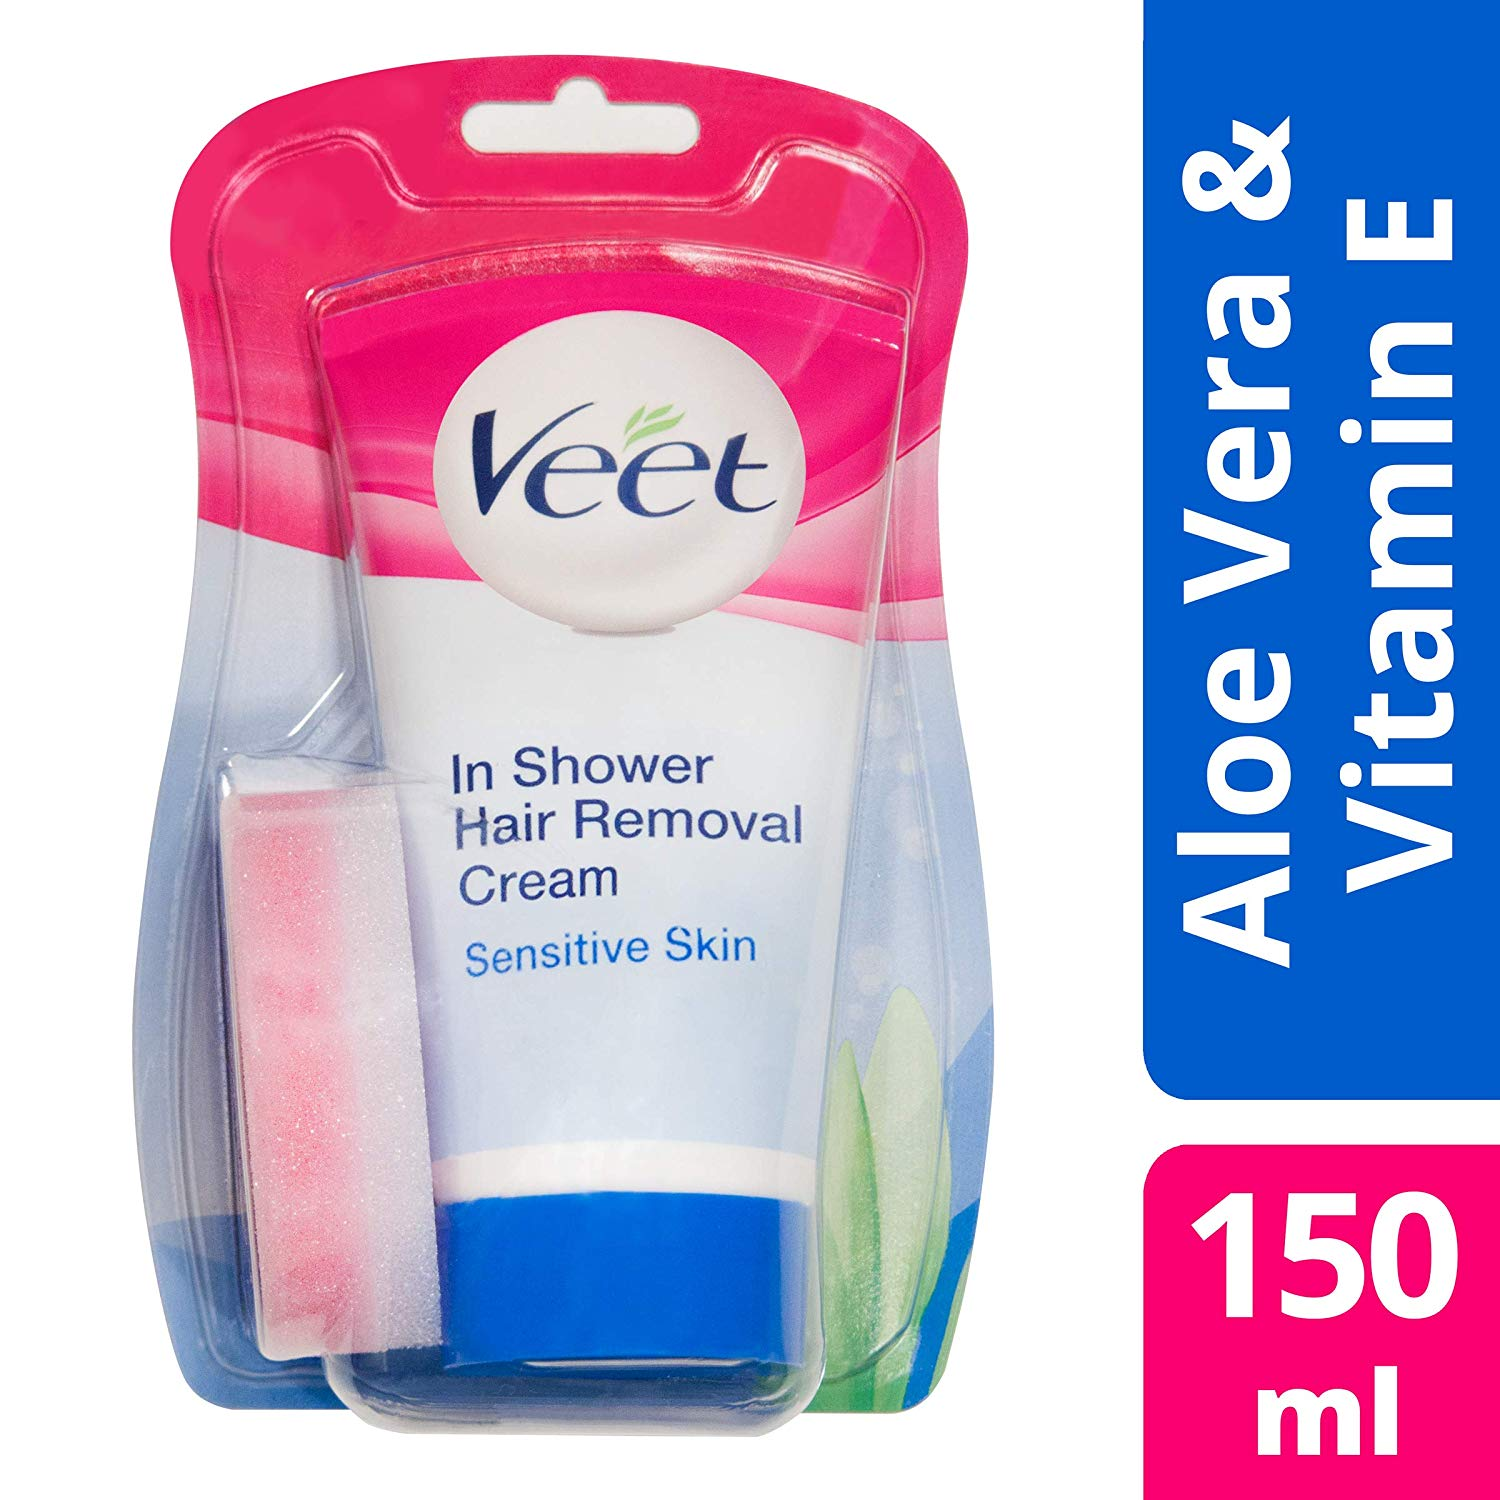 Veet In Shower Hair Removal Cream Sensitive Skin With Aloe Vera